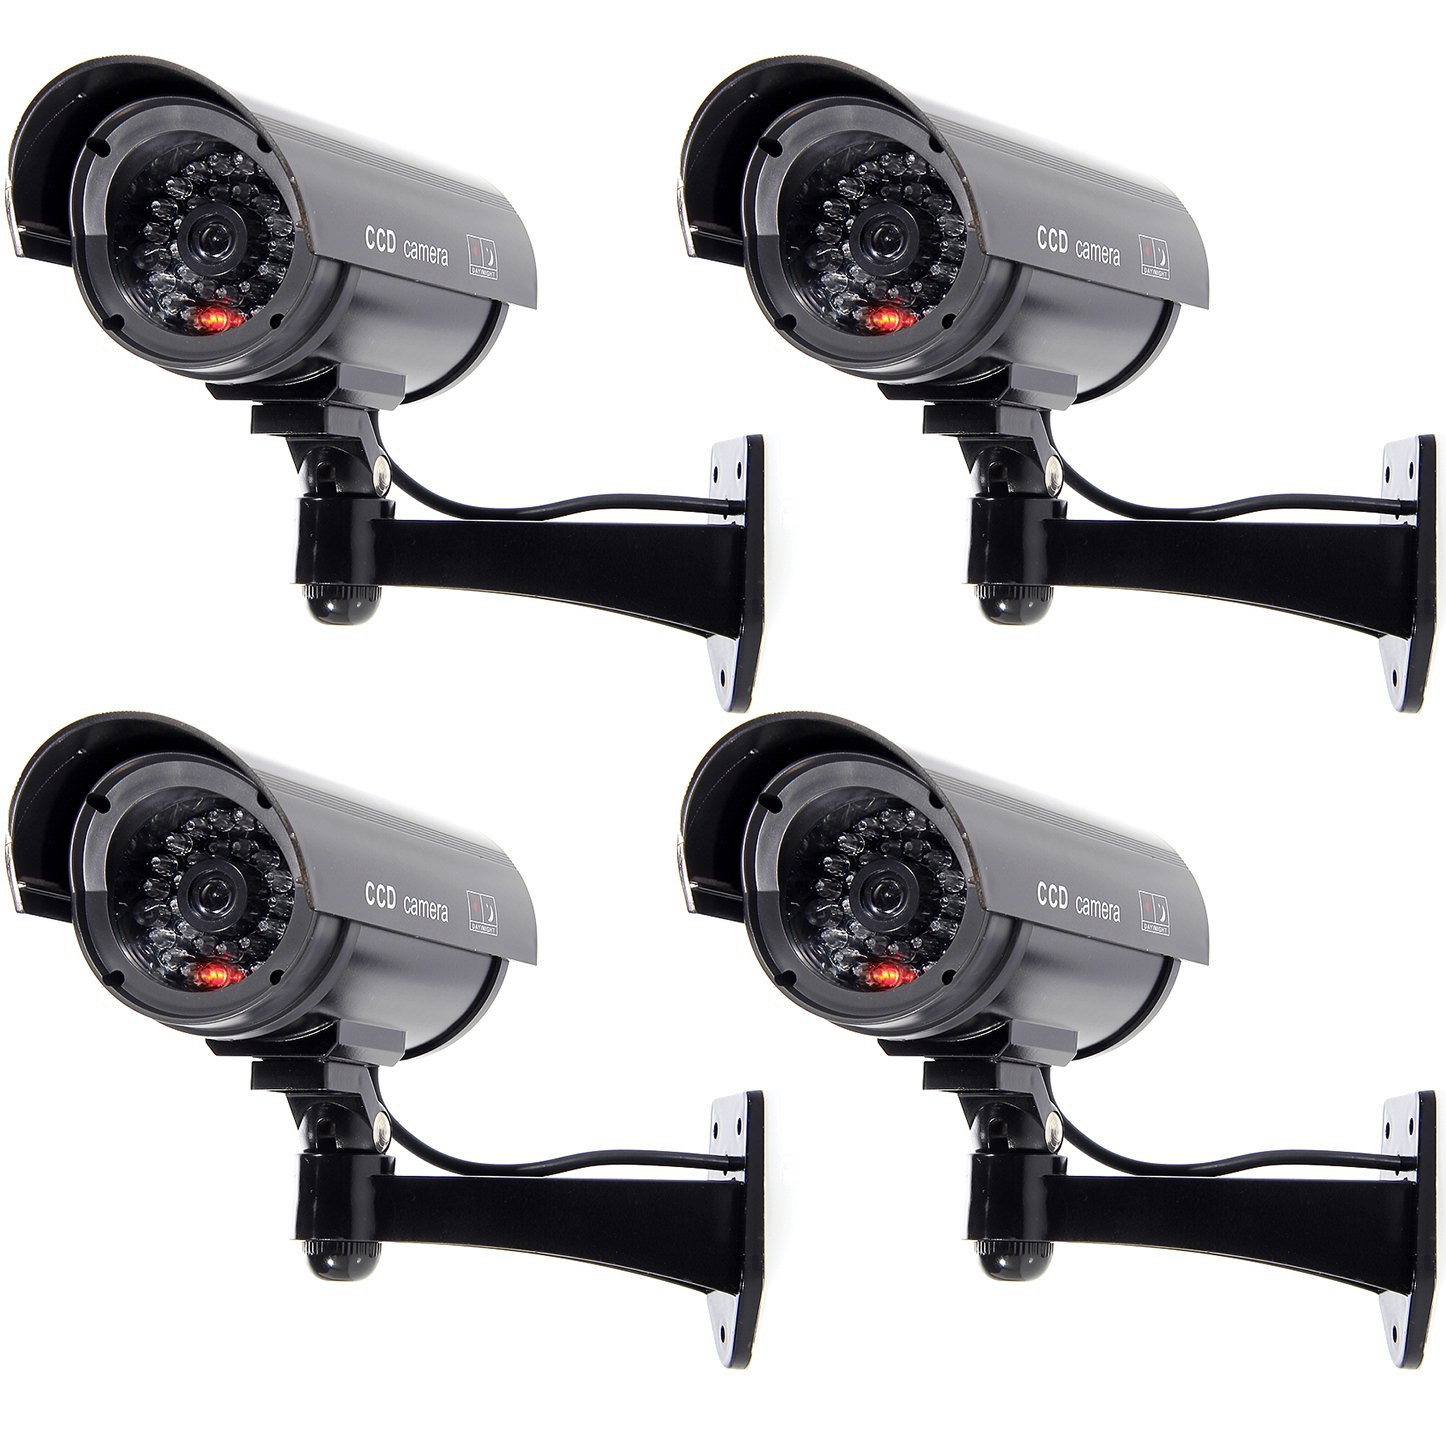 WALI Bullet Dummy Fake Surveillance Security CCTV Dome Camera Indoor Outdoor with 1 Flashing LED Light + Warning Security Alert Sticker Decals WL-B1-4 (Black), 4 Pack